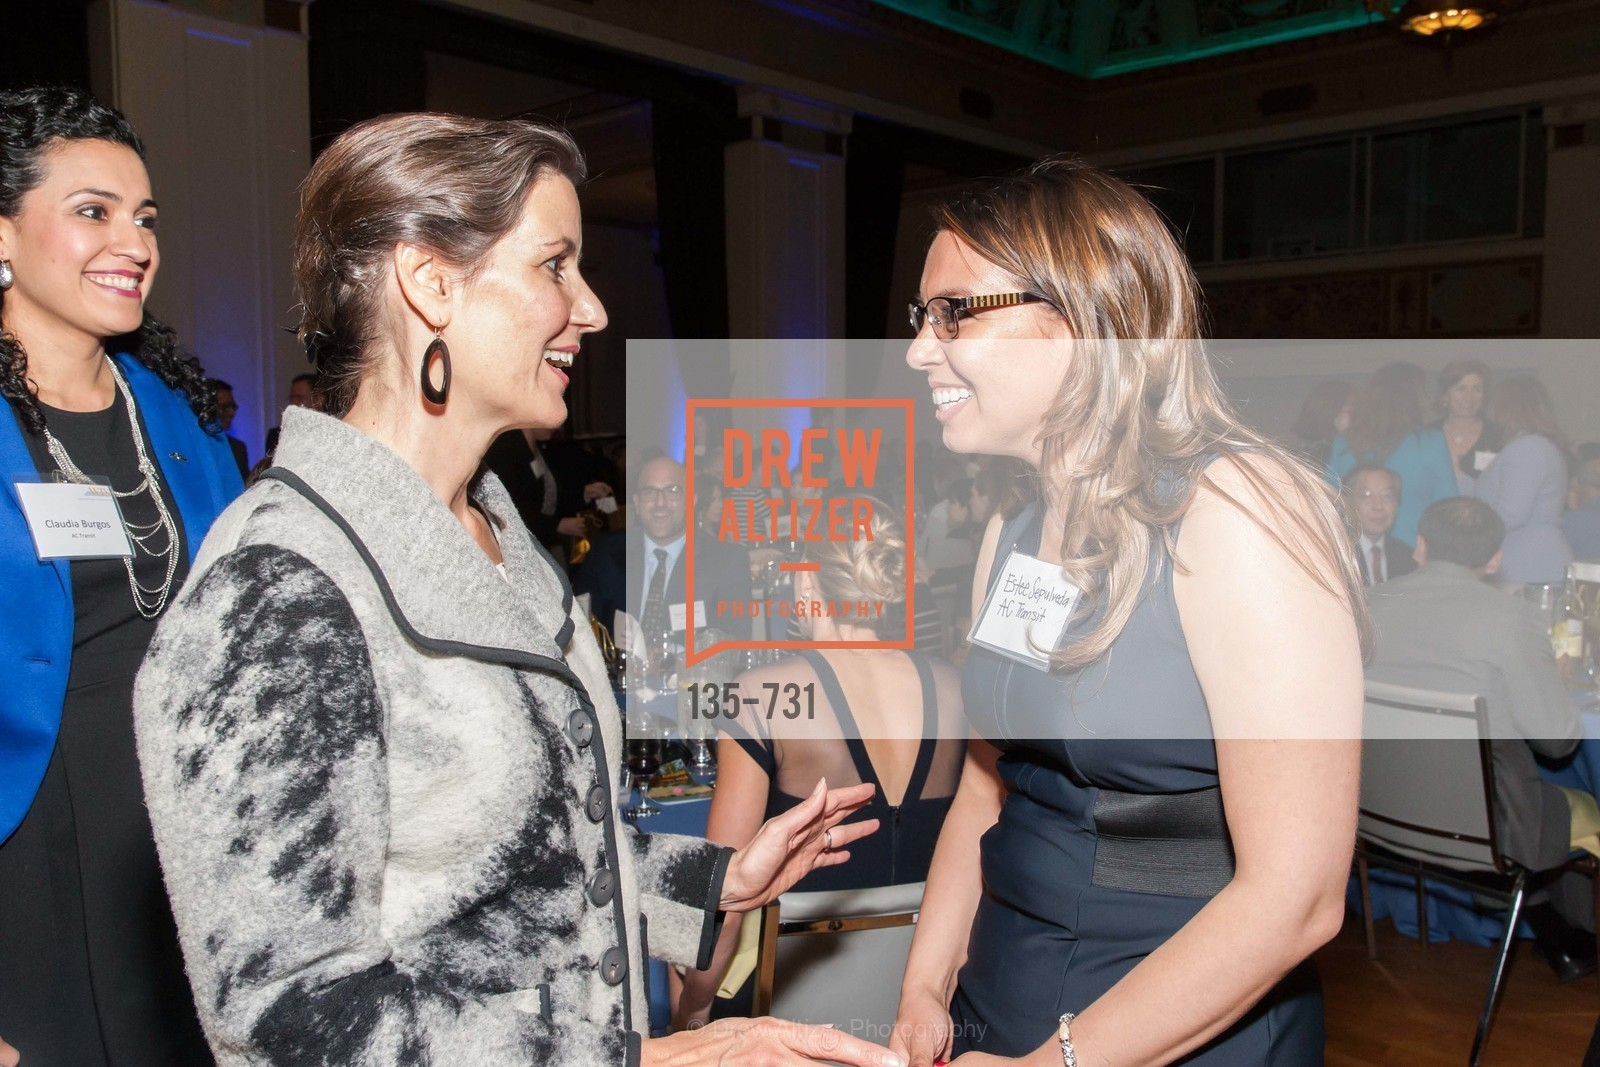 Libby Schaaf, Estee Sepulveda, WOMEN'S TRANSPORTATION SEMINAR SF Bay Area Chapter Annual Scholarship Awards, US, May 15th, 2015,Drew Altizer, Drew Altizer Photography, full-service event agency, private events, San Francisco photographer, photographer California